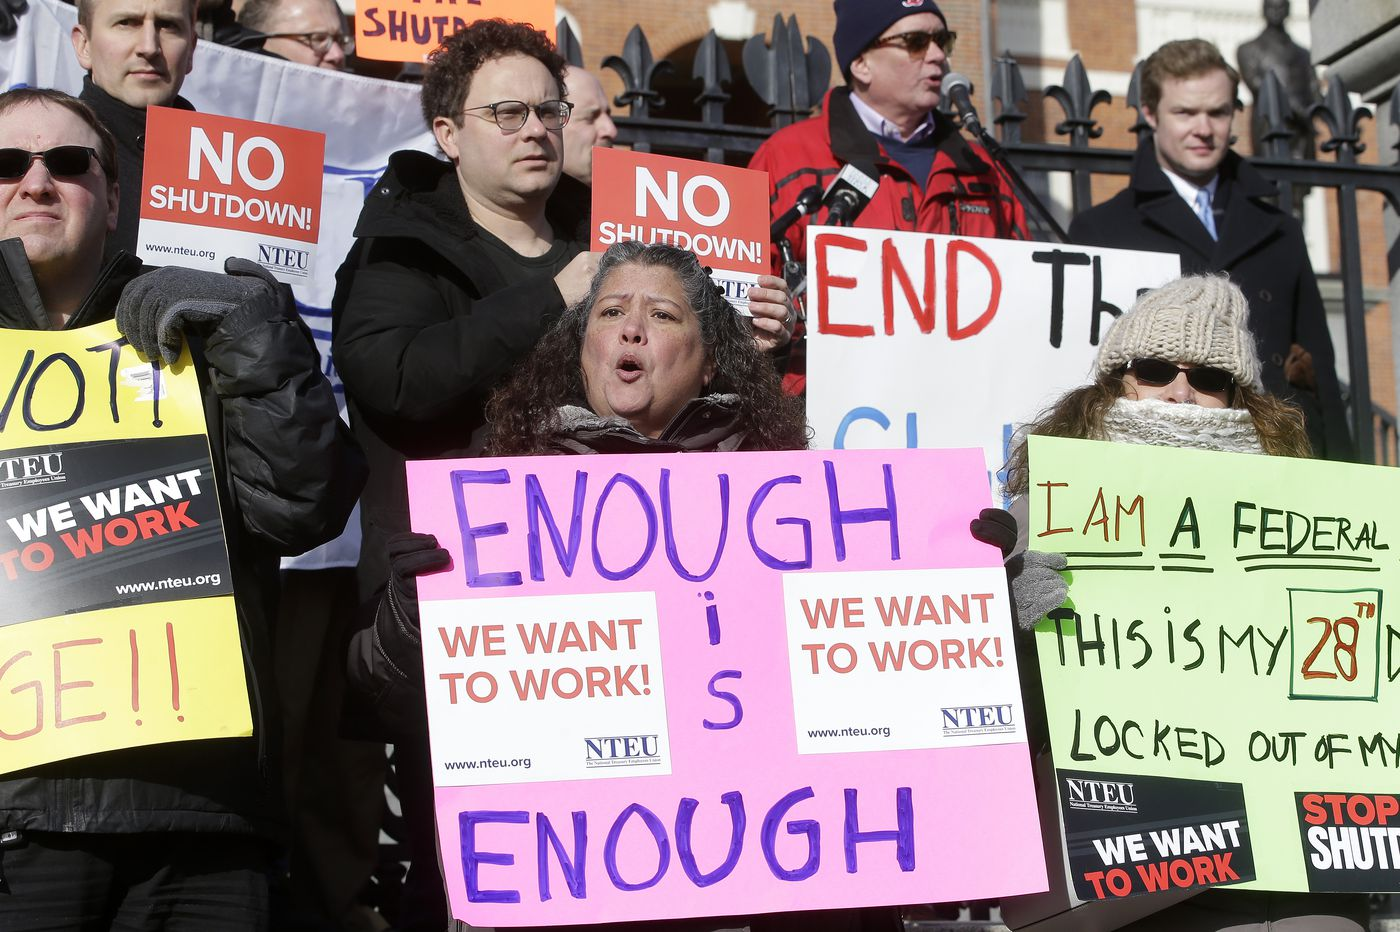 After 16 years as a federal employee, the government shutdown persuaded me to change careers | Opinion